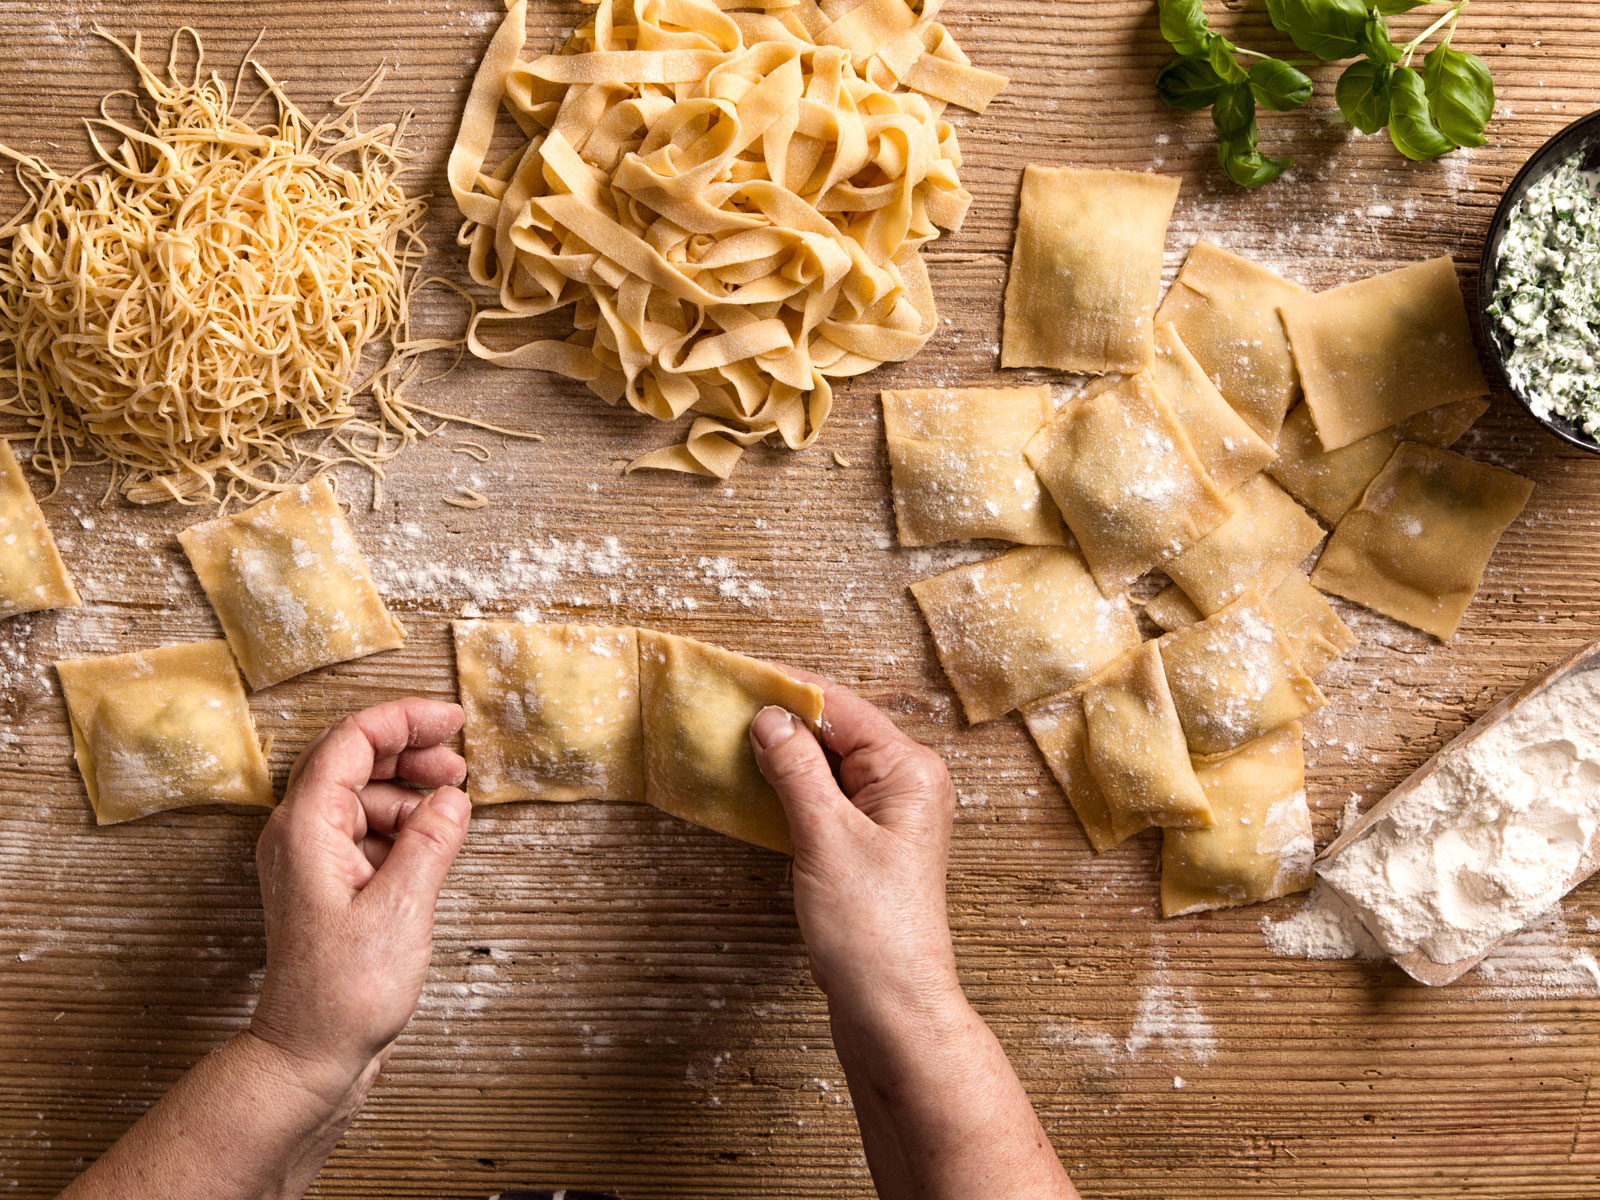 Osteria Chef Shares His Foolproof Tips for Making Fresh Pasta at Home